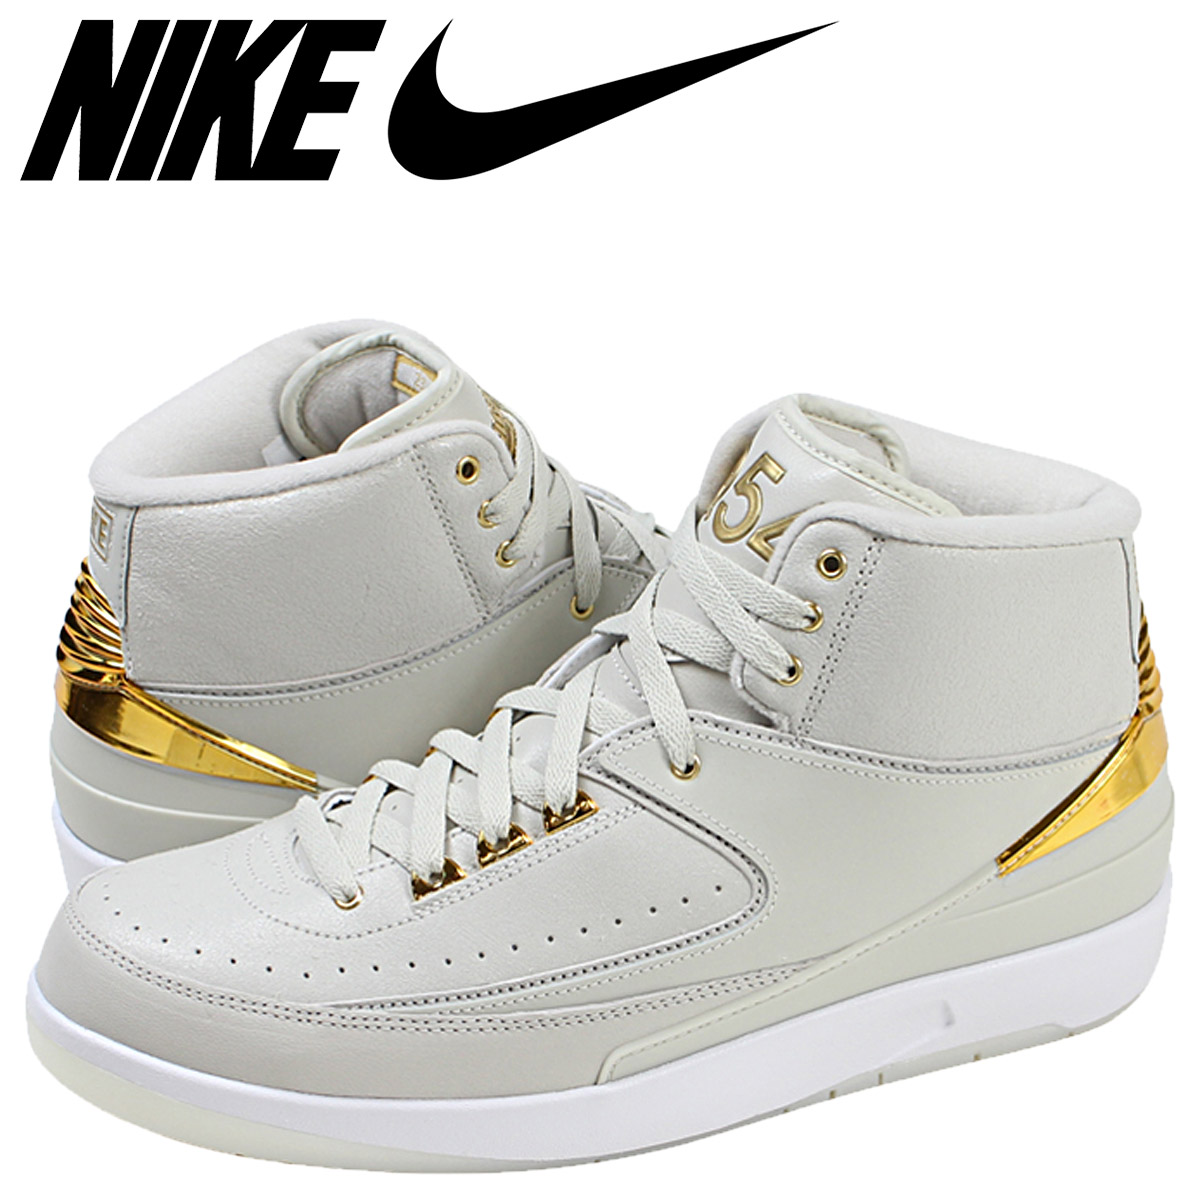 new concept 8eb61 cd146 NIKE Nike Air Jordan sneakers AIR JORDAN 2 RETRO QUAI 54 Air Jordan  nostalgic 866,035-001 beige men